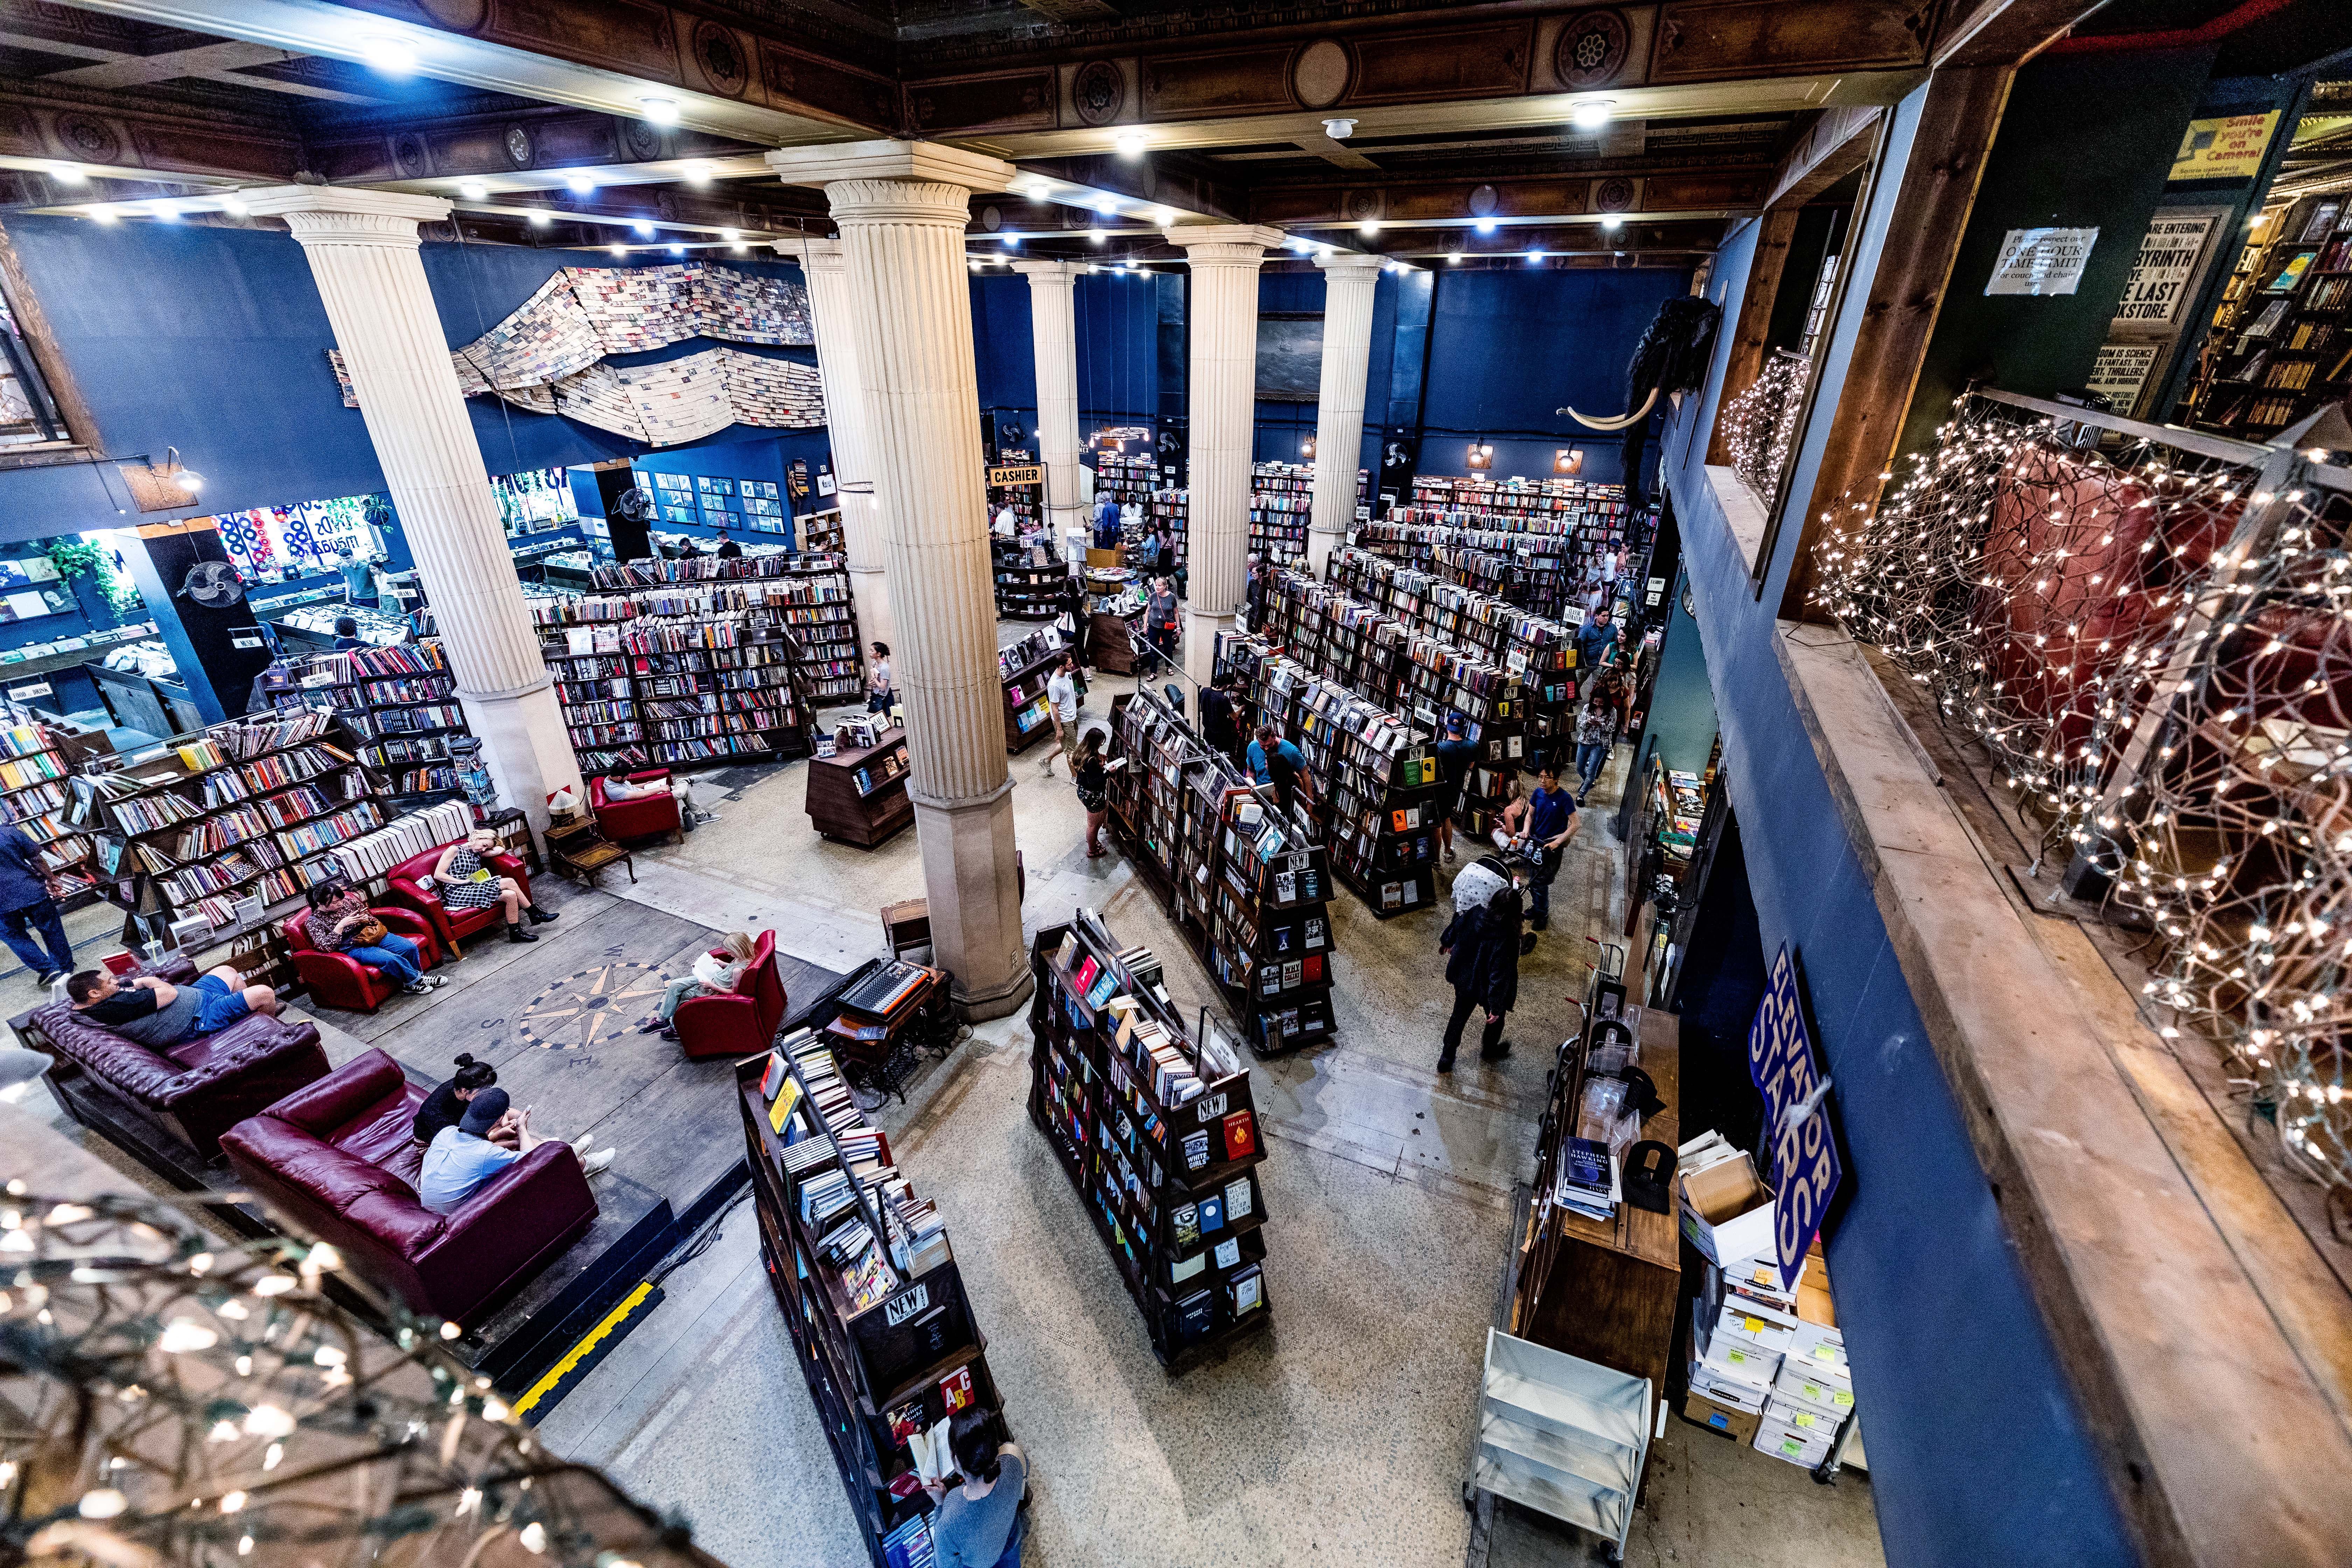 INside the book store